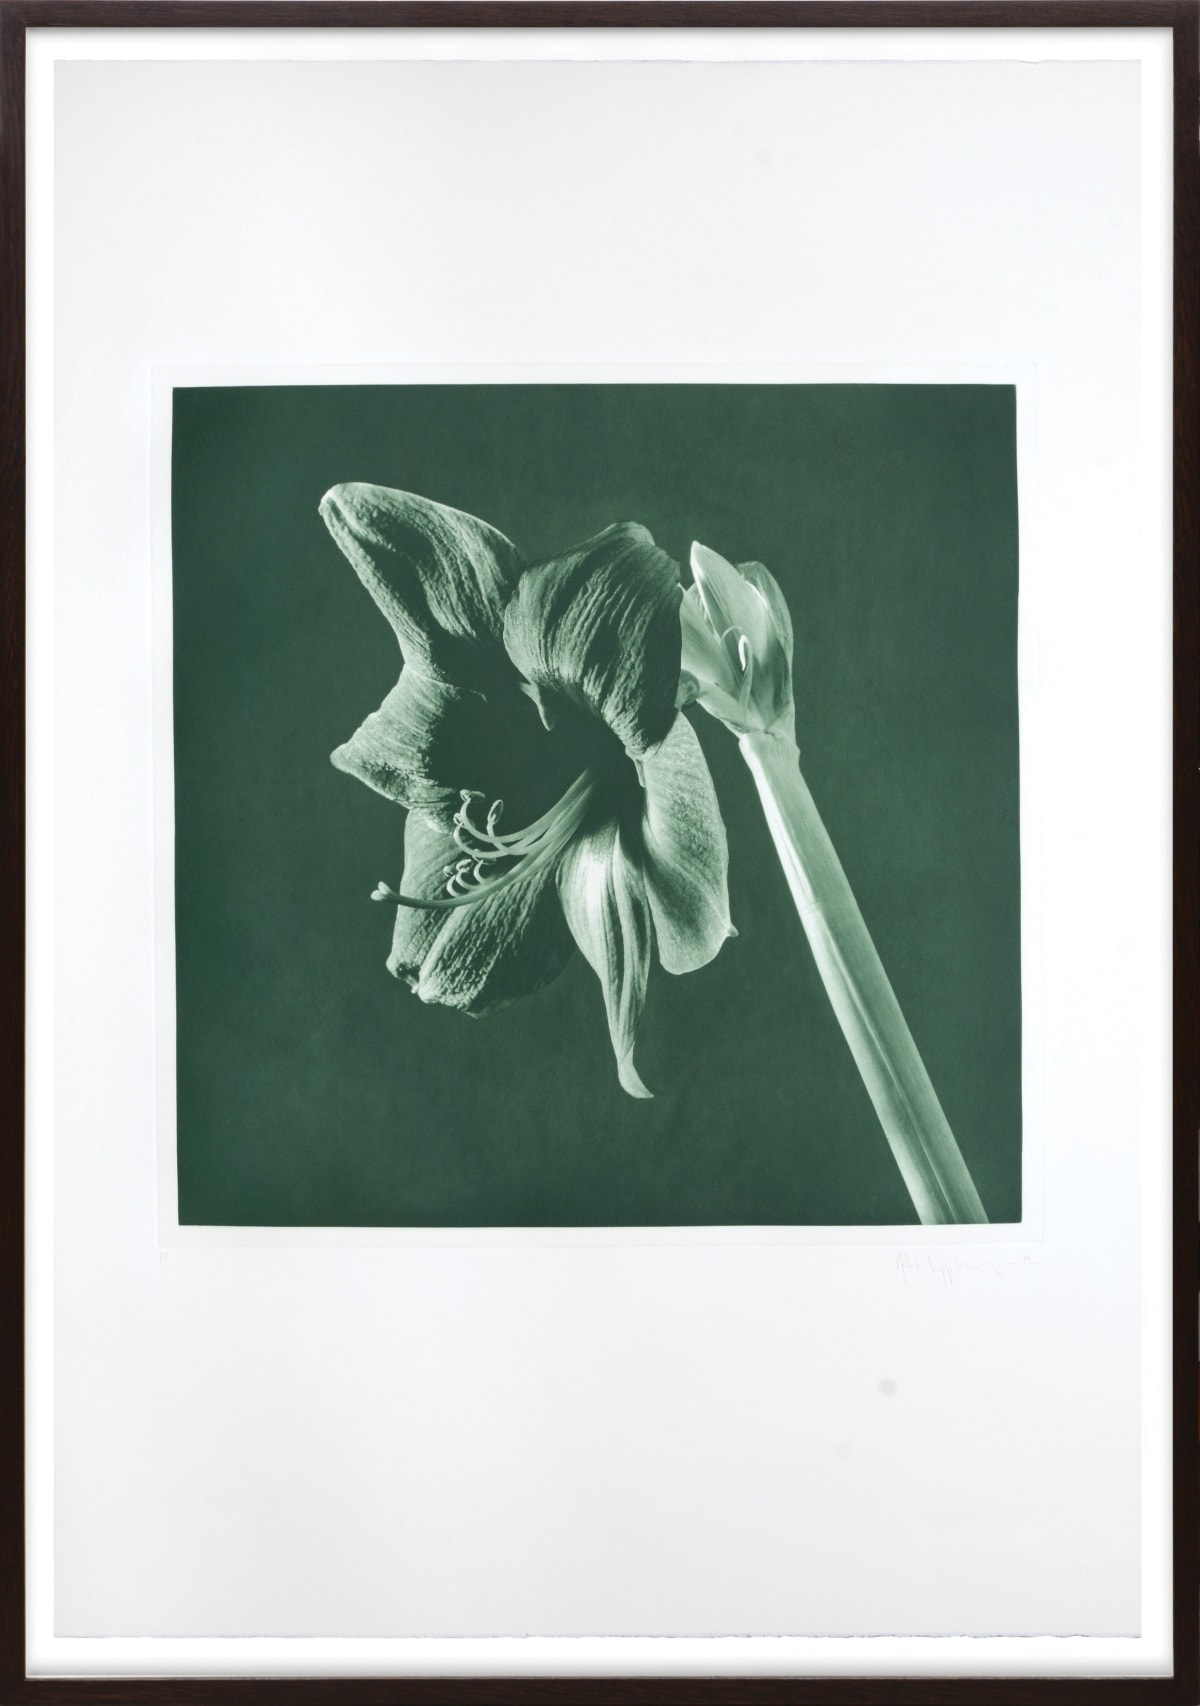 Robert Mapplethorpe, Green Amarylis, 1987 Toned photogravure on Arches wove paper, all edges untrimmed 48.5 x 48.4 cm